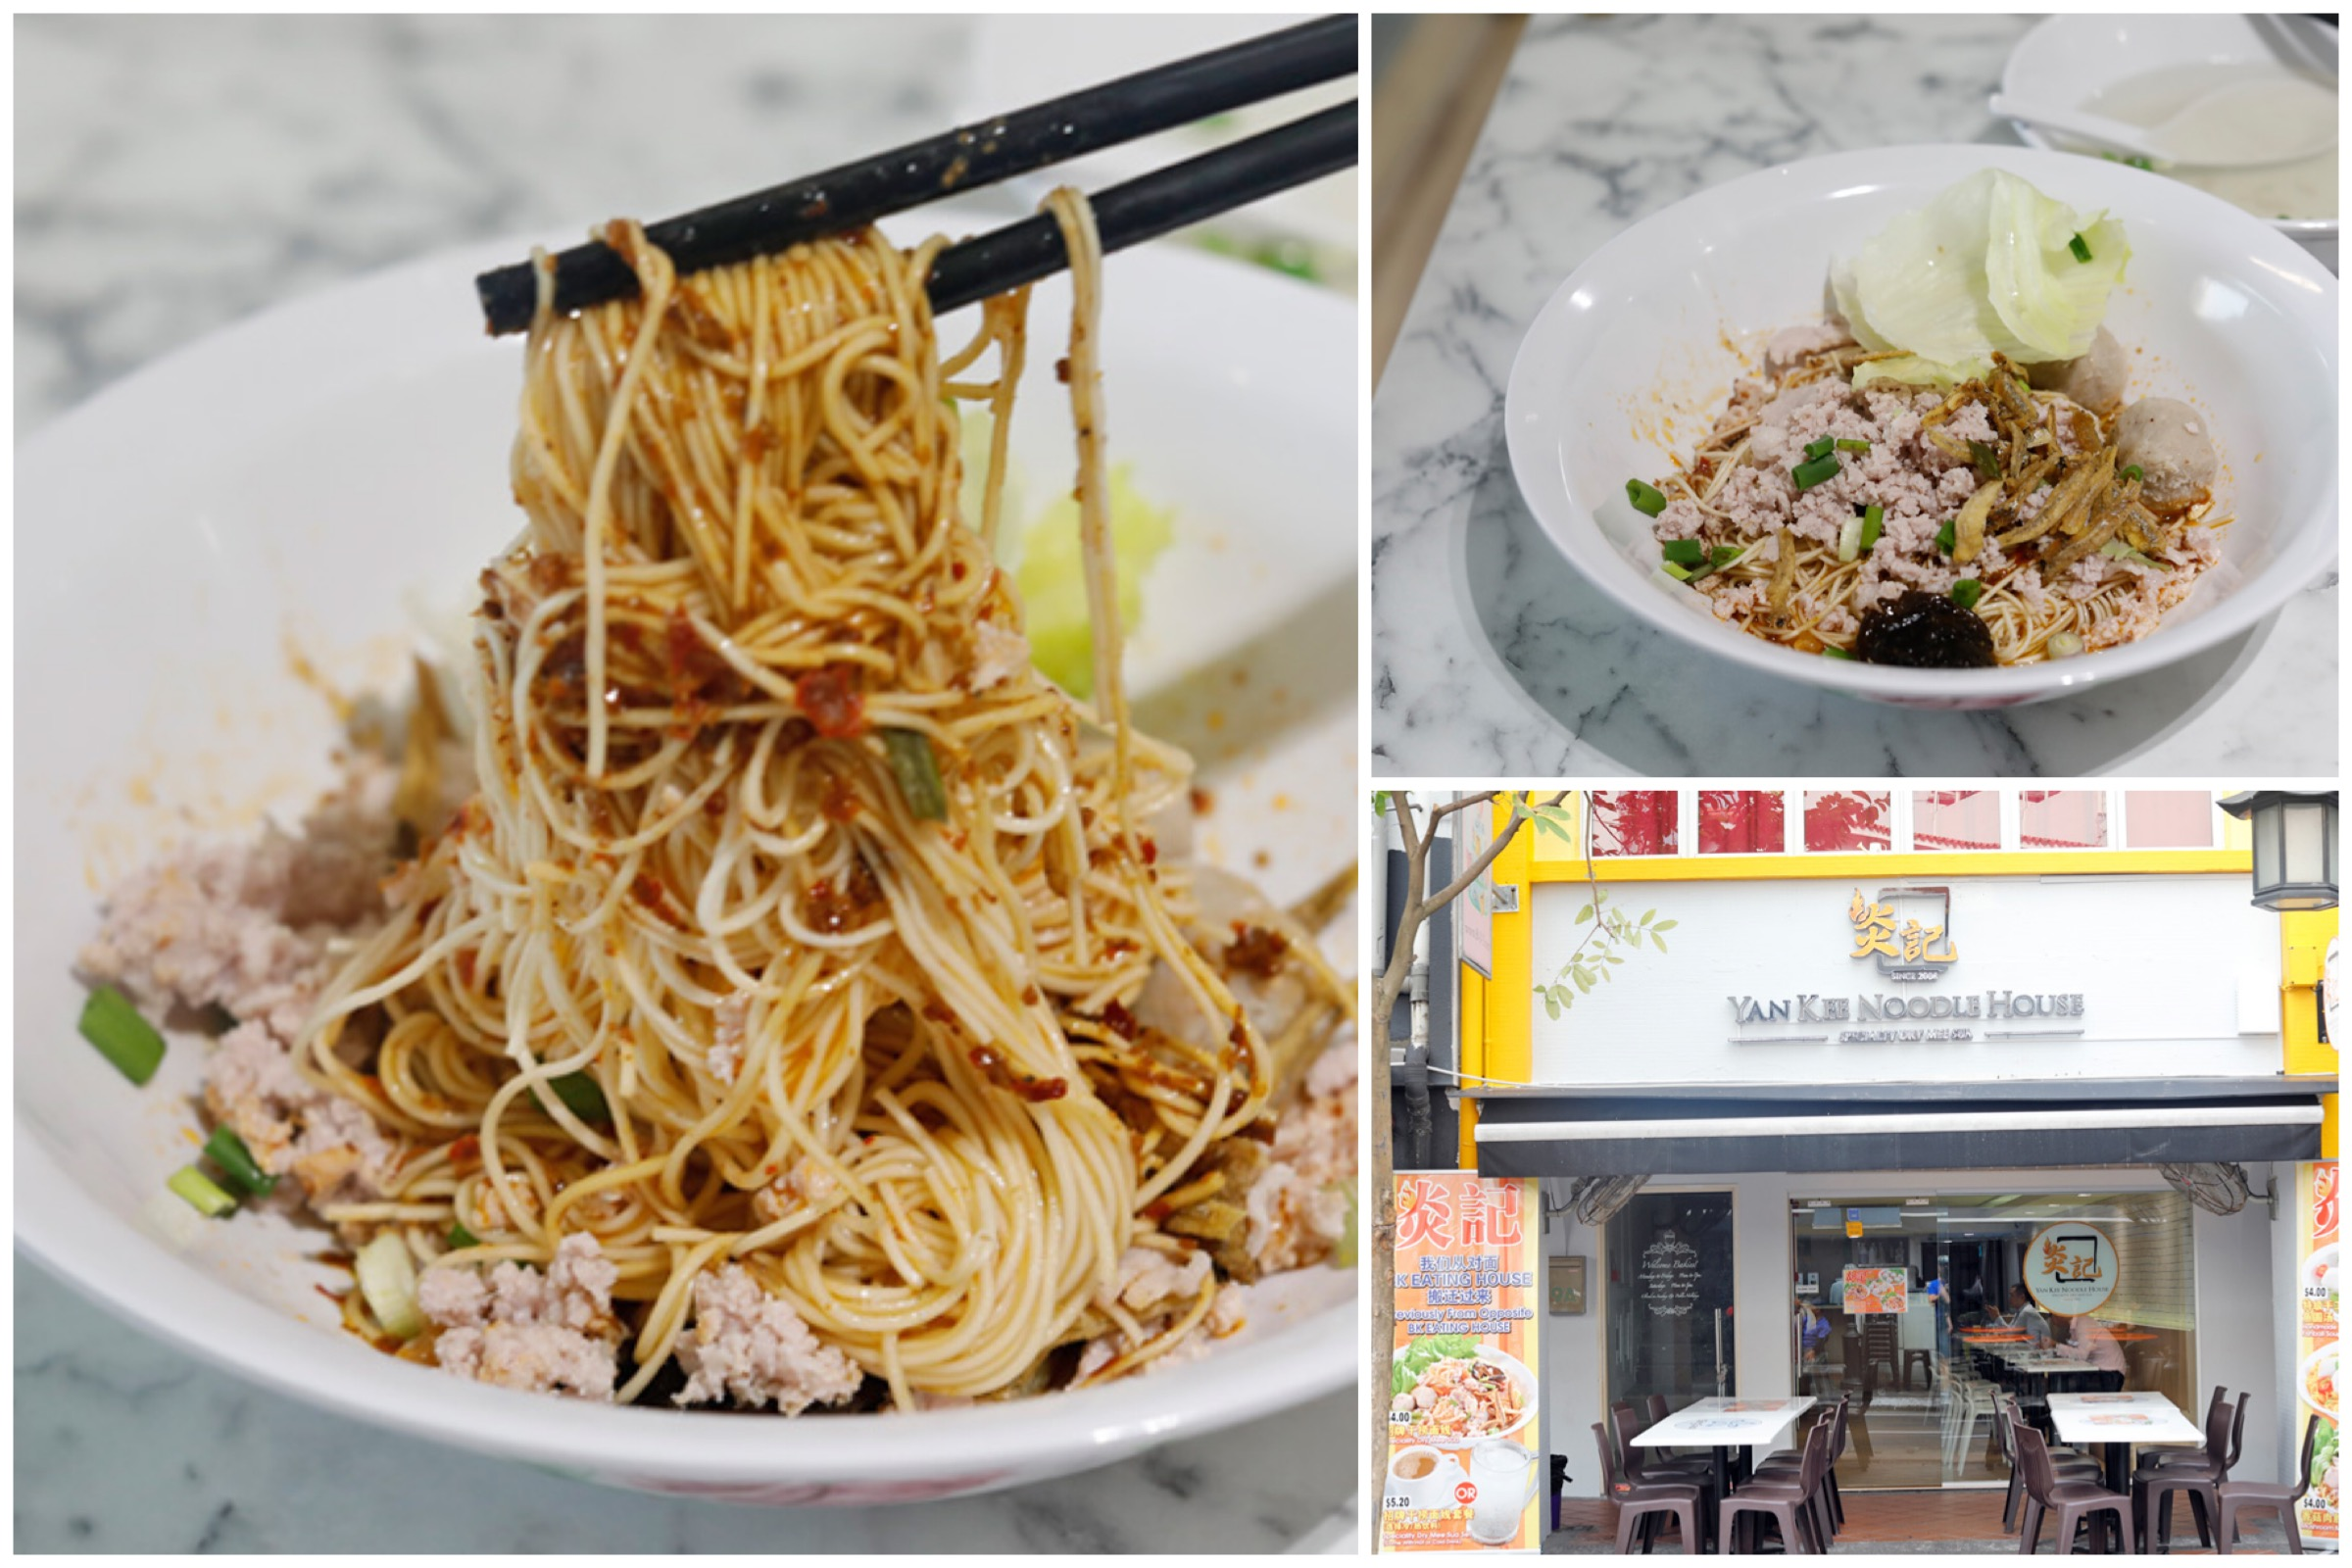 Yan Kee Noodle House - Popular Dry Mee Sua Shop Opens Opposite Its Old Location At Circular Road